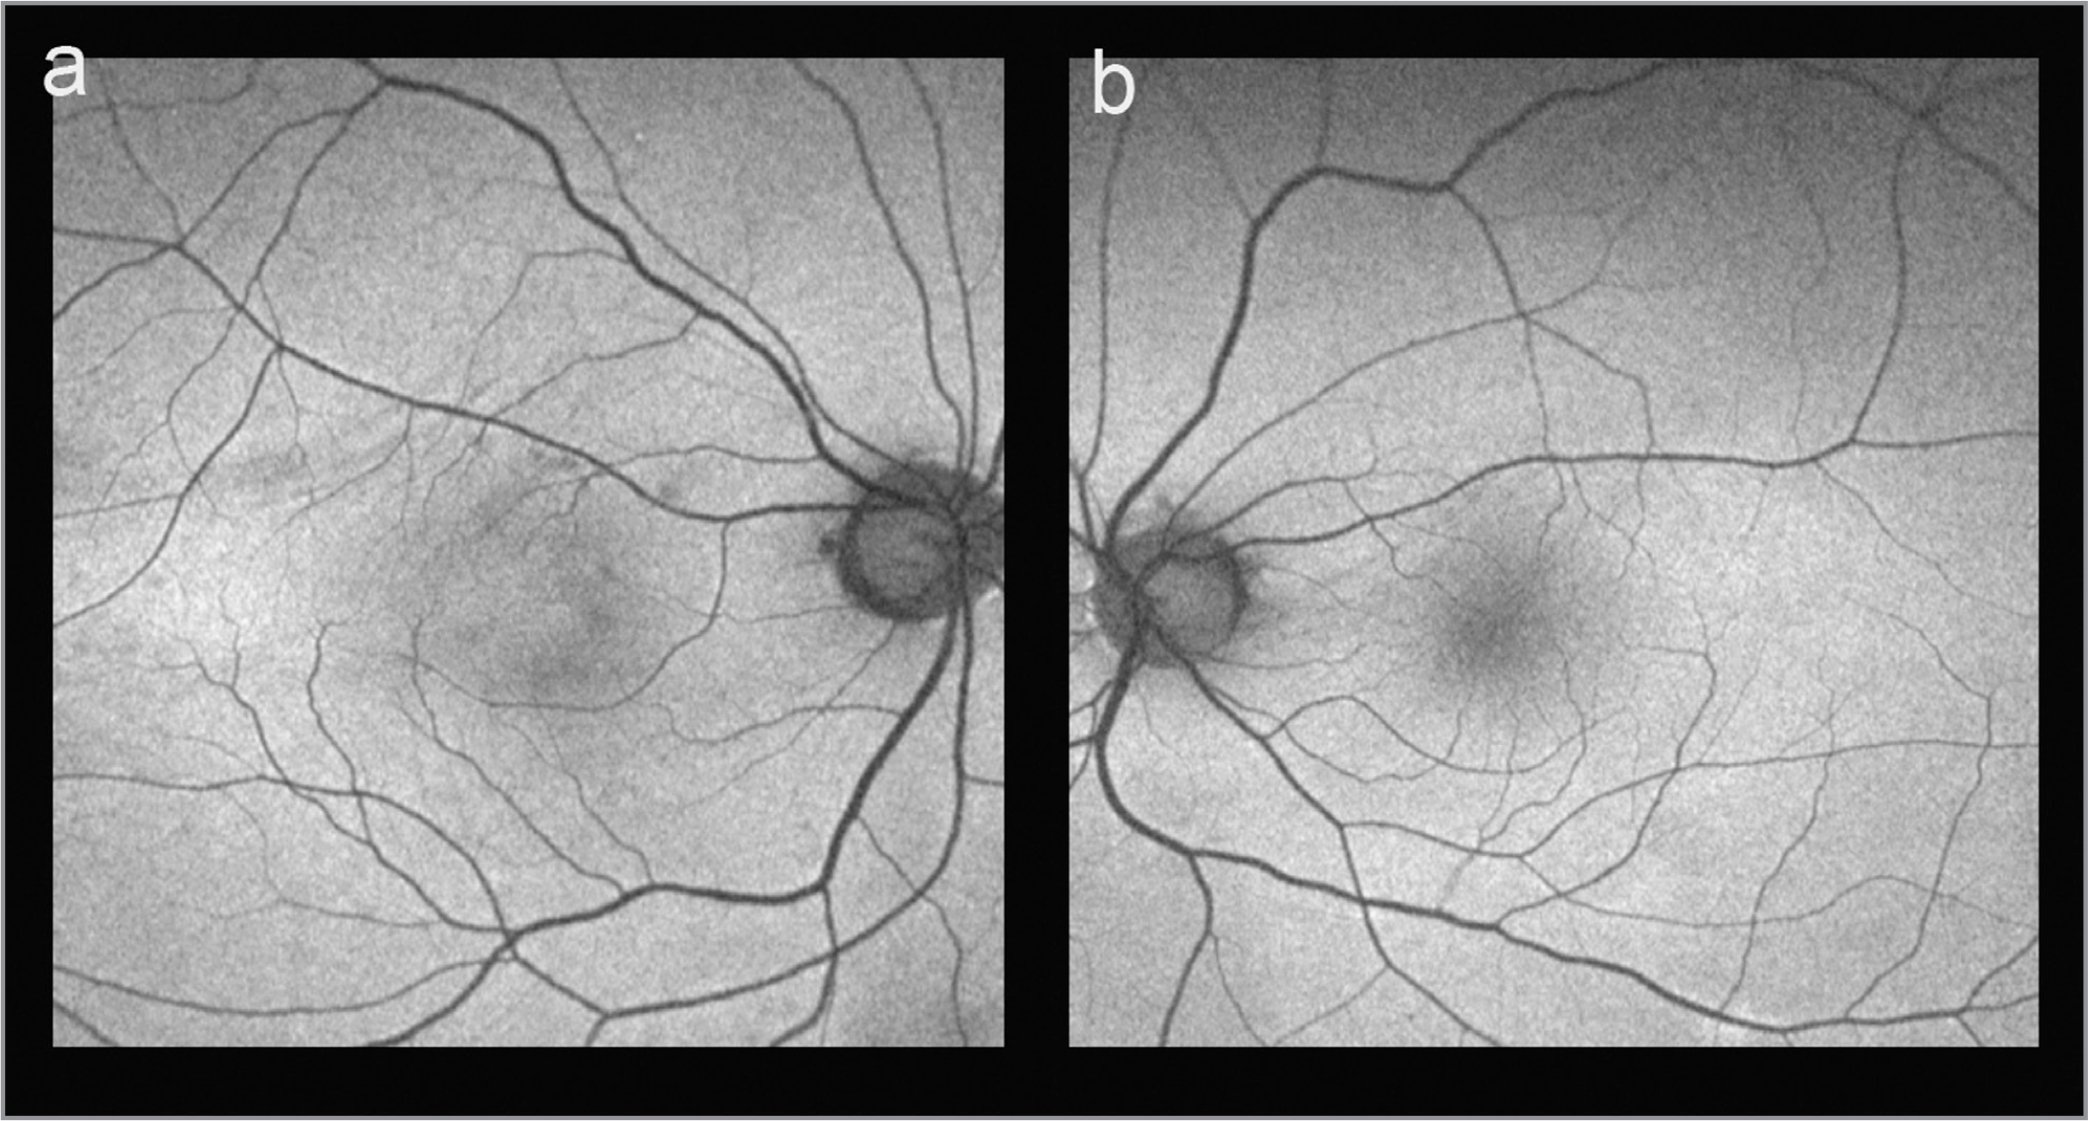 Fundus autofluorescence (FAF) image of the right eye (A) and the left eye (B). Loss of normal foveal hypoautofluorescence in the right eye (A). Normal FAF in the left eye (B).